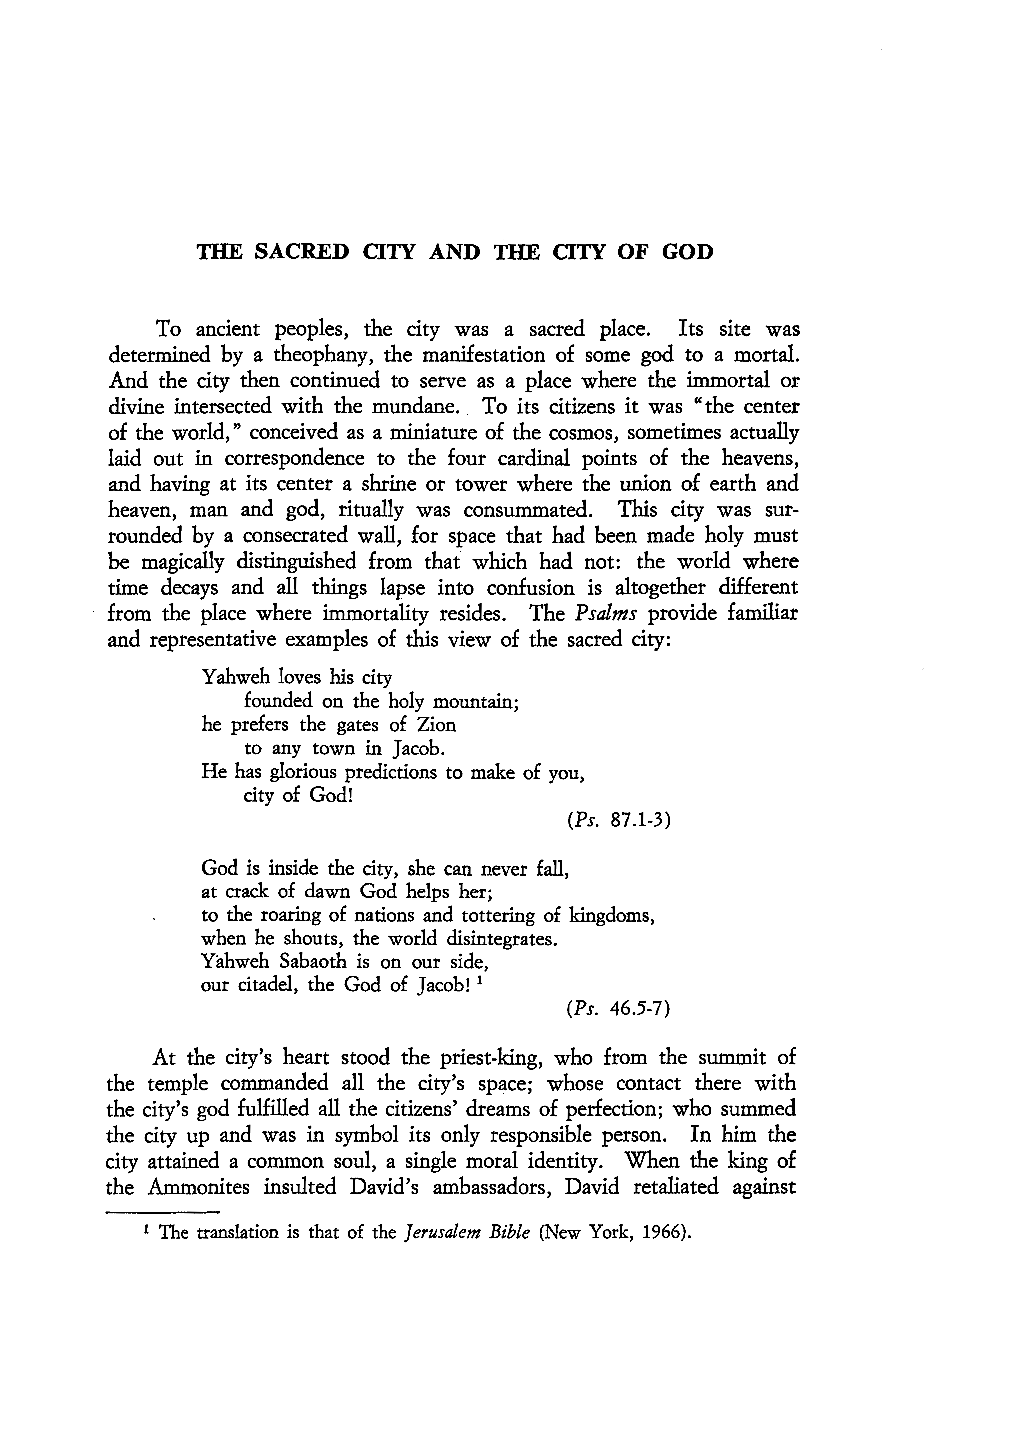 The Sacred City and the City of God - James Dougherty - Augustinian